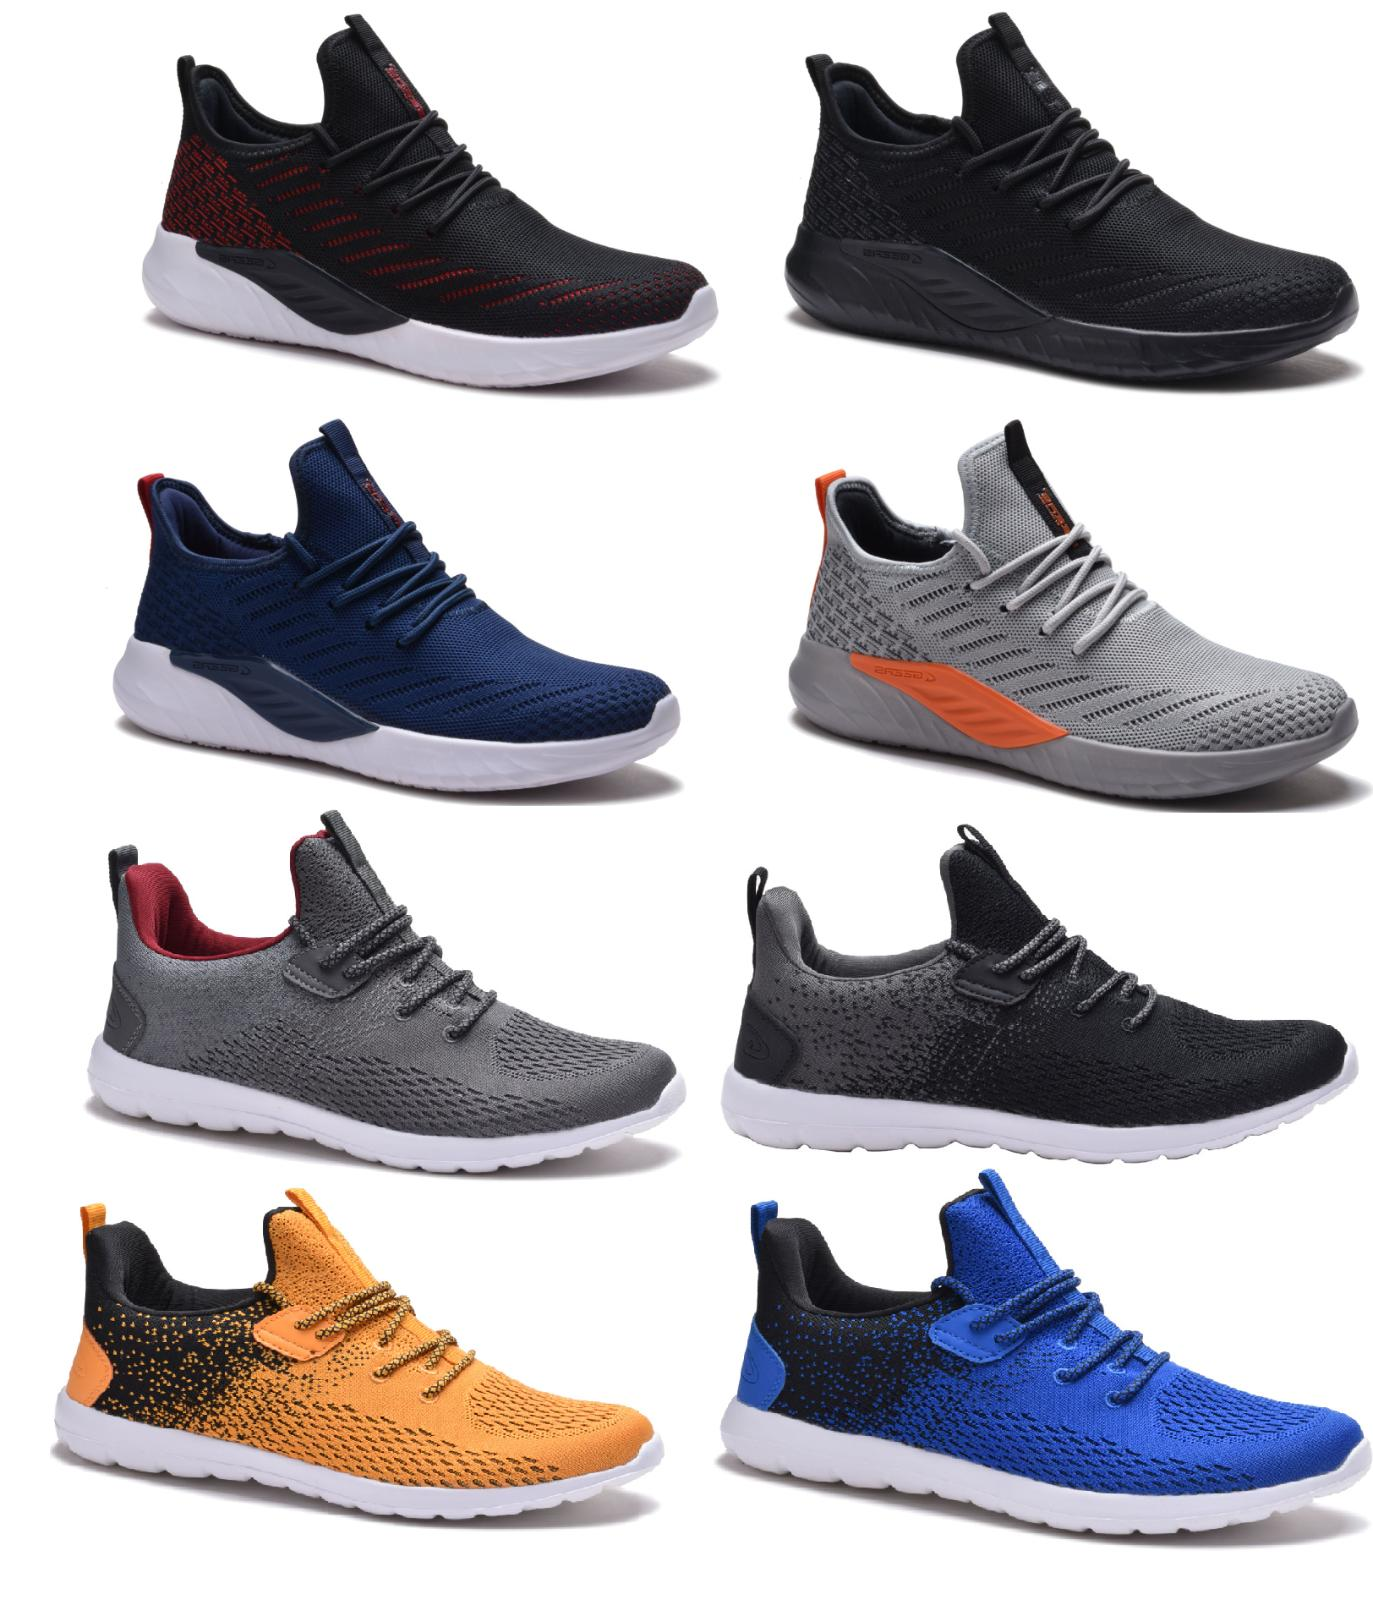 new mens athletic running shoes casual walking